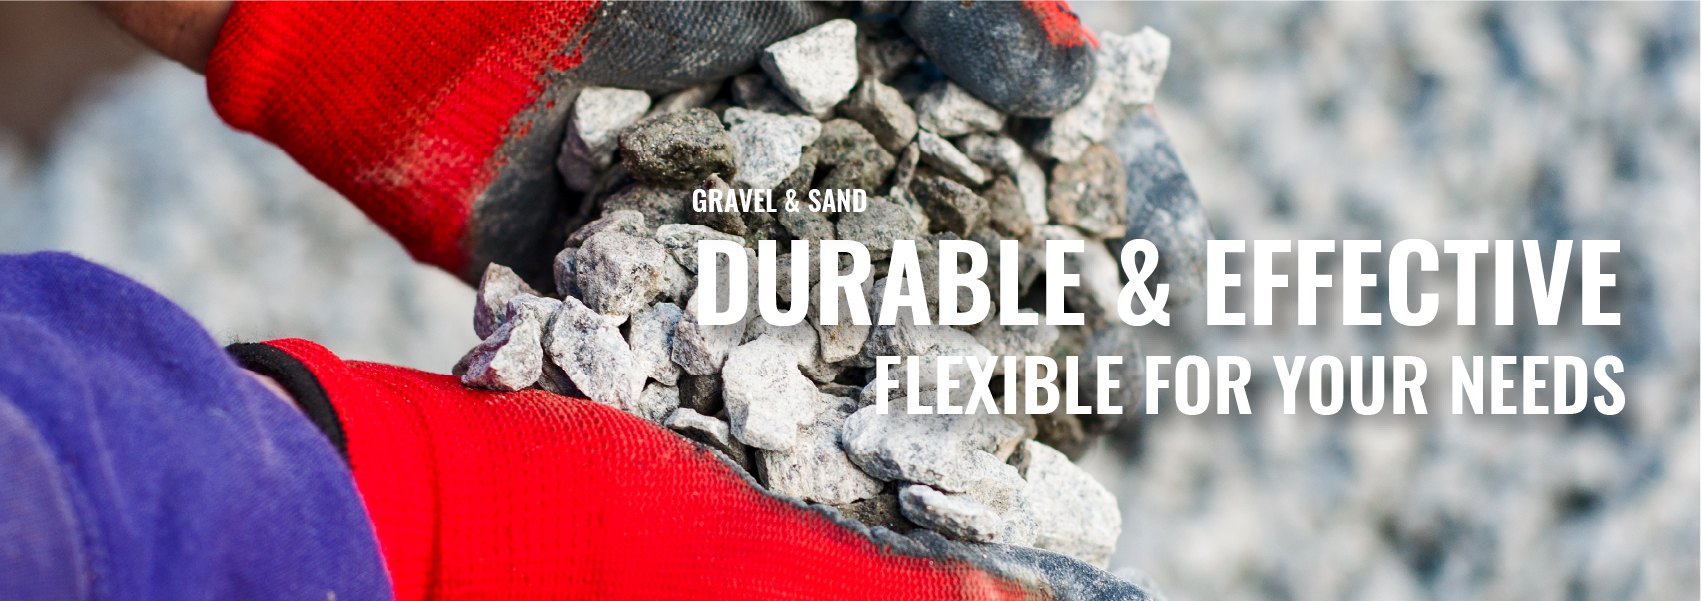 Rockland gravel and sand products banner.